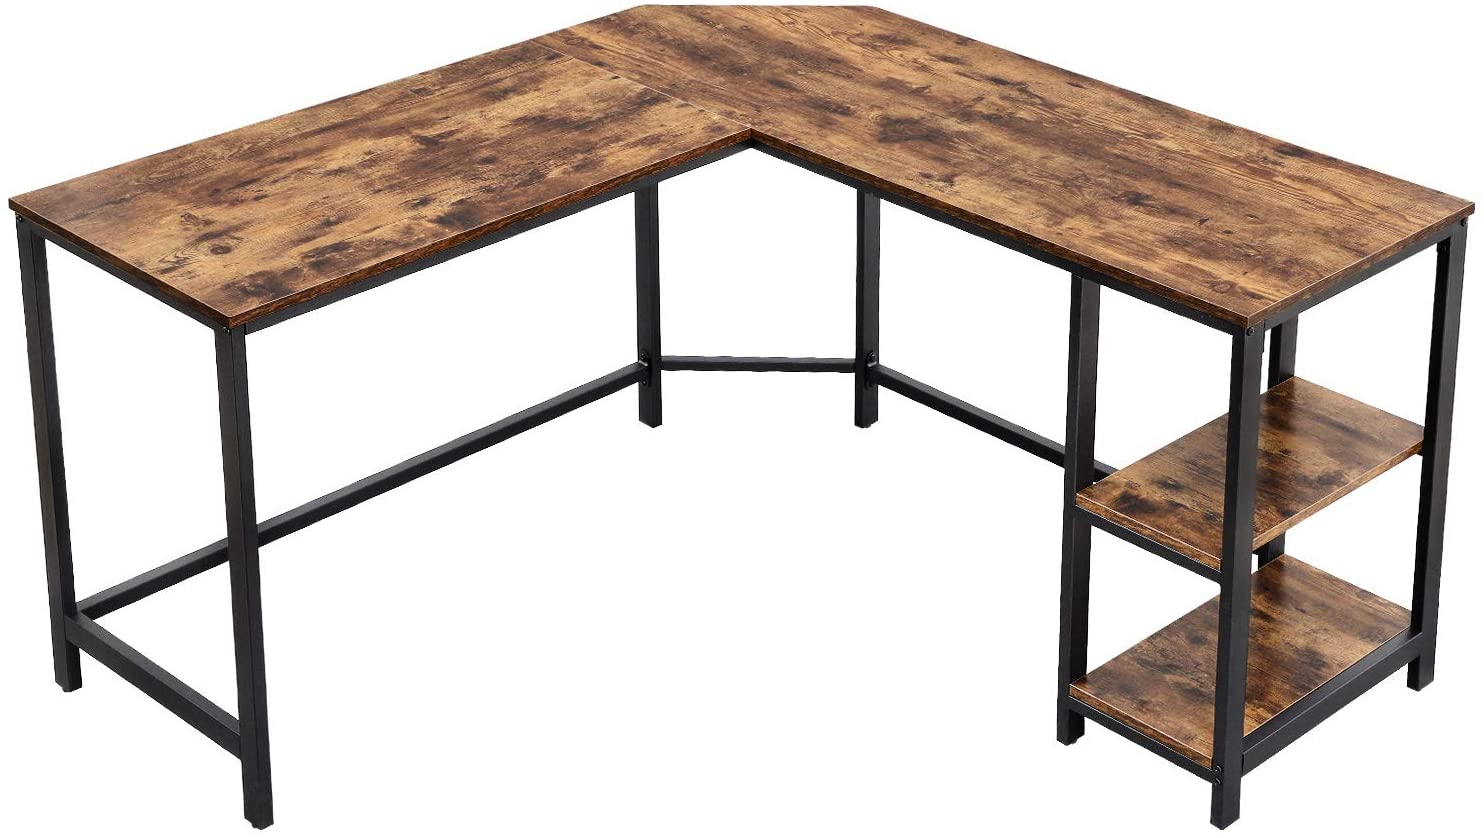 Easy to Assemble, Attractive Metal Desk